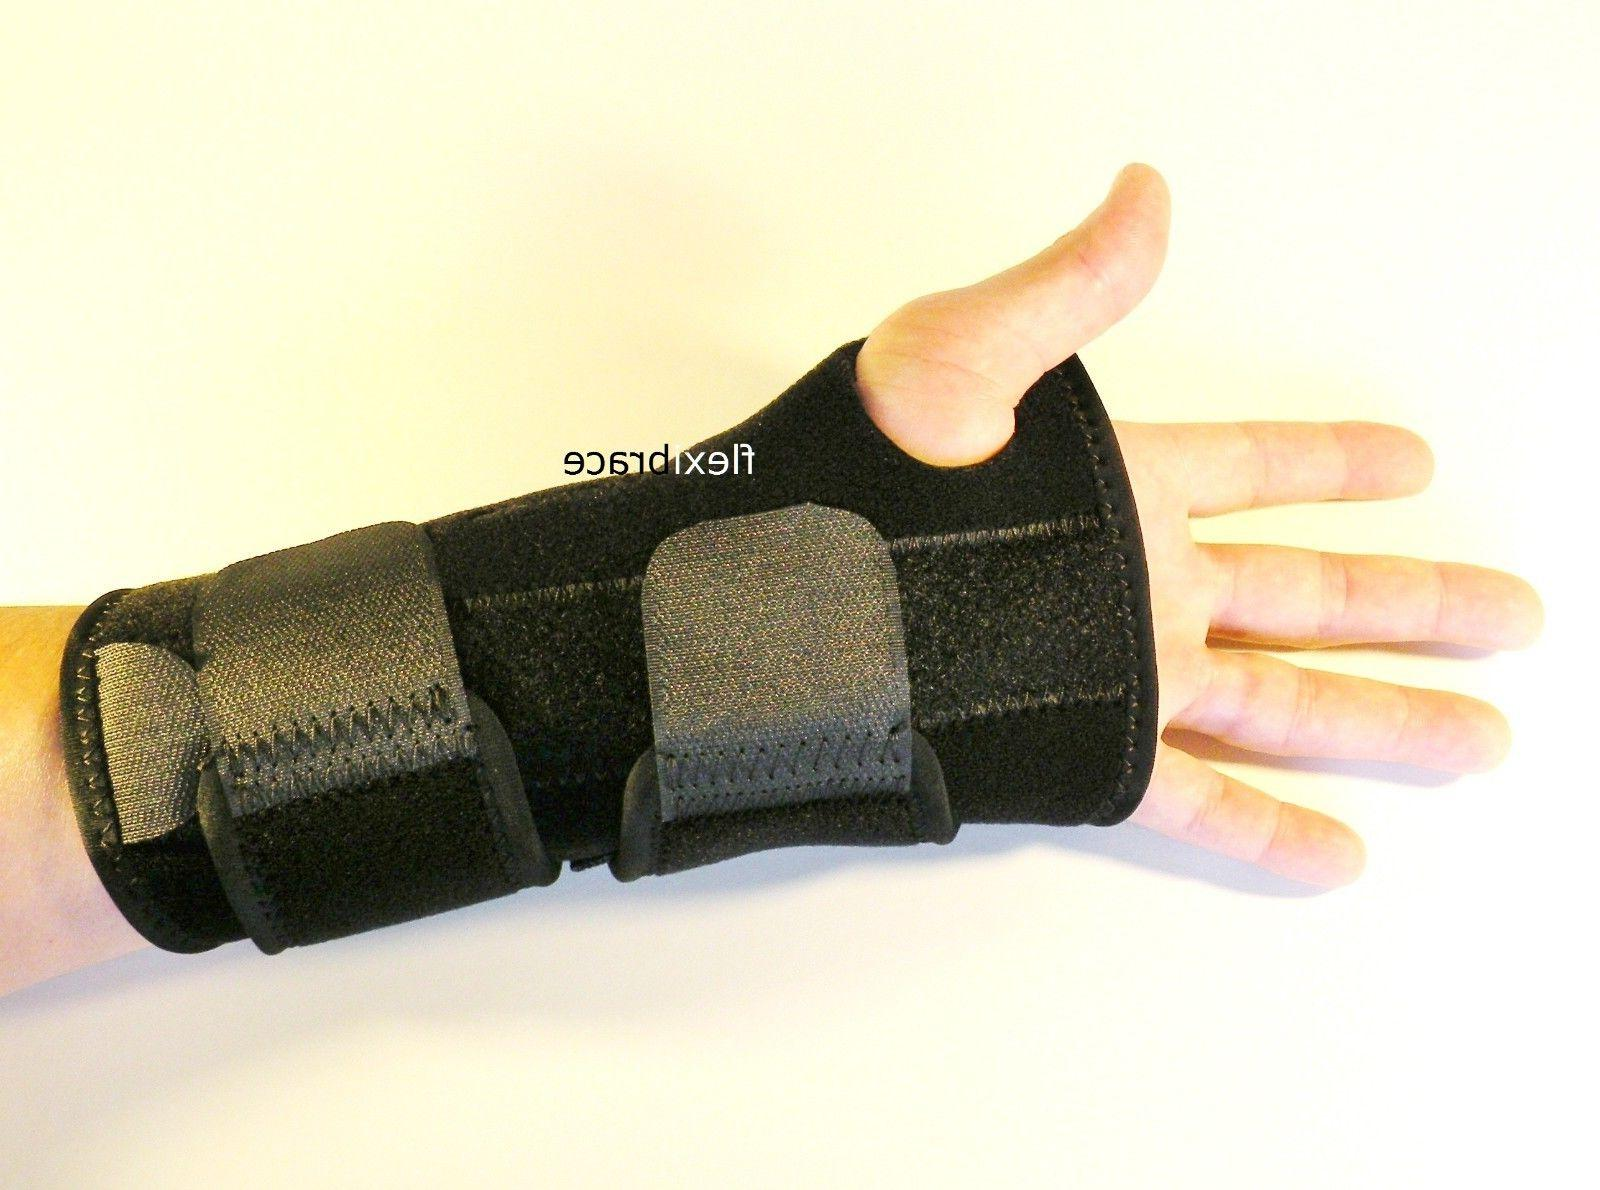 2 APPROVED Hand Brace Tunnel Support Flexibrace